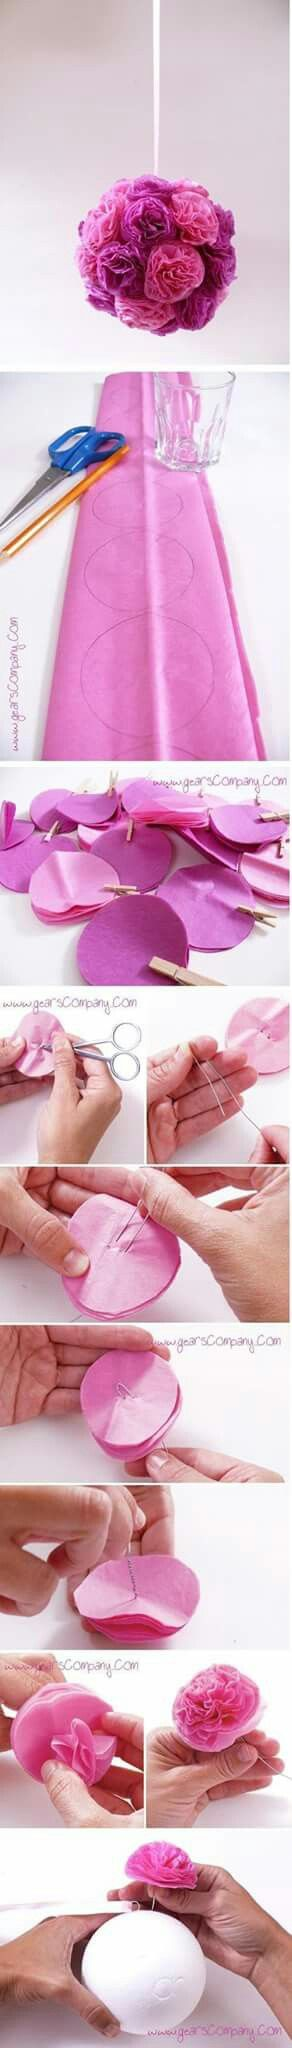 Flower Craft 1